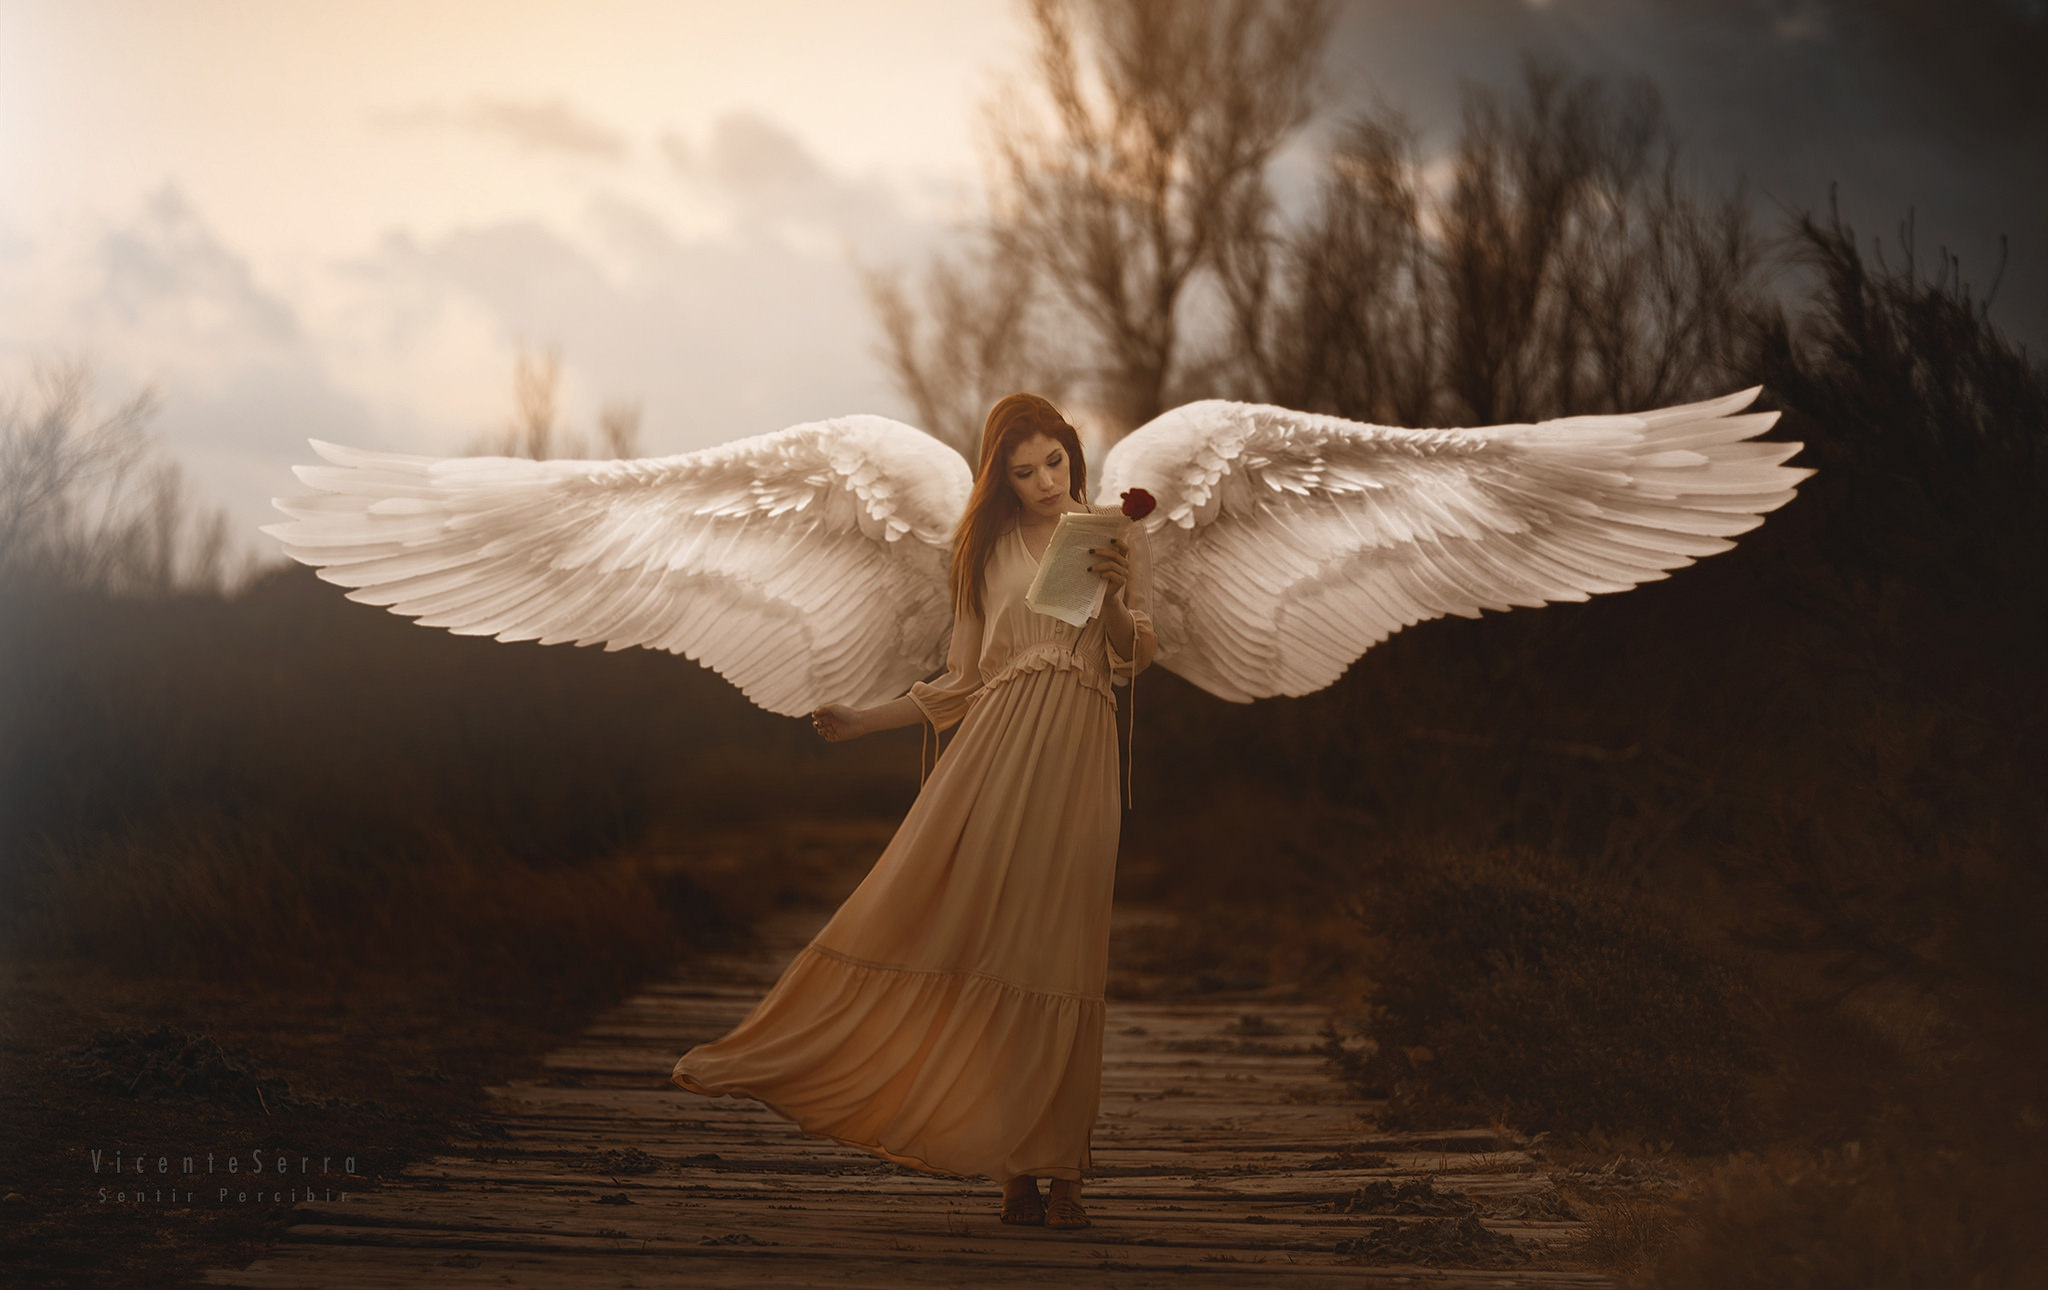 I Am Alone Wallpapers 3d Girl With Wings Angel Hd Girls 4k Wallpapers Images